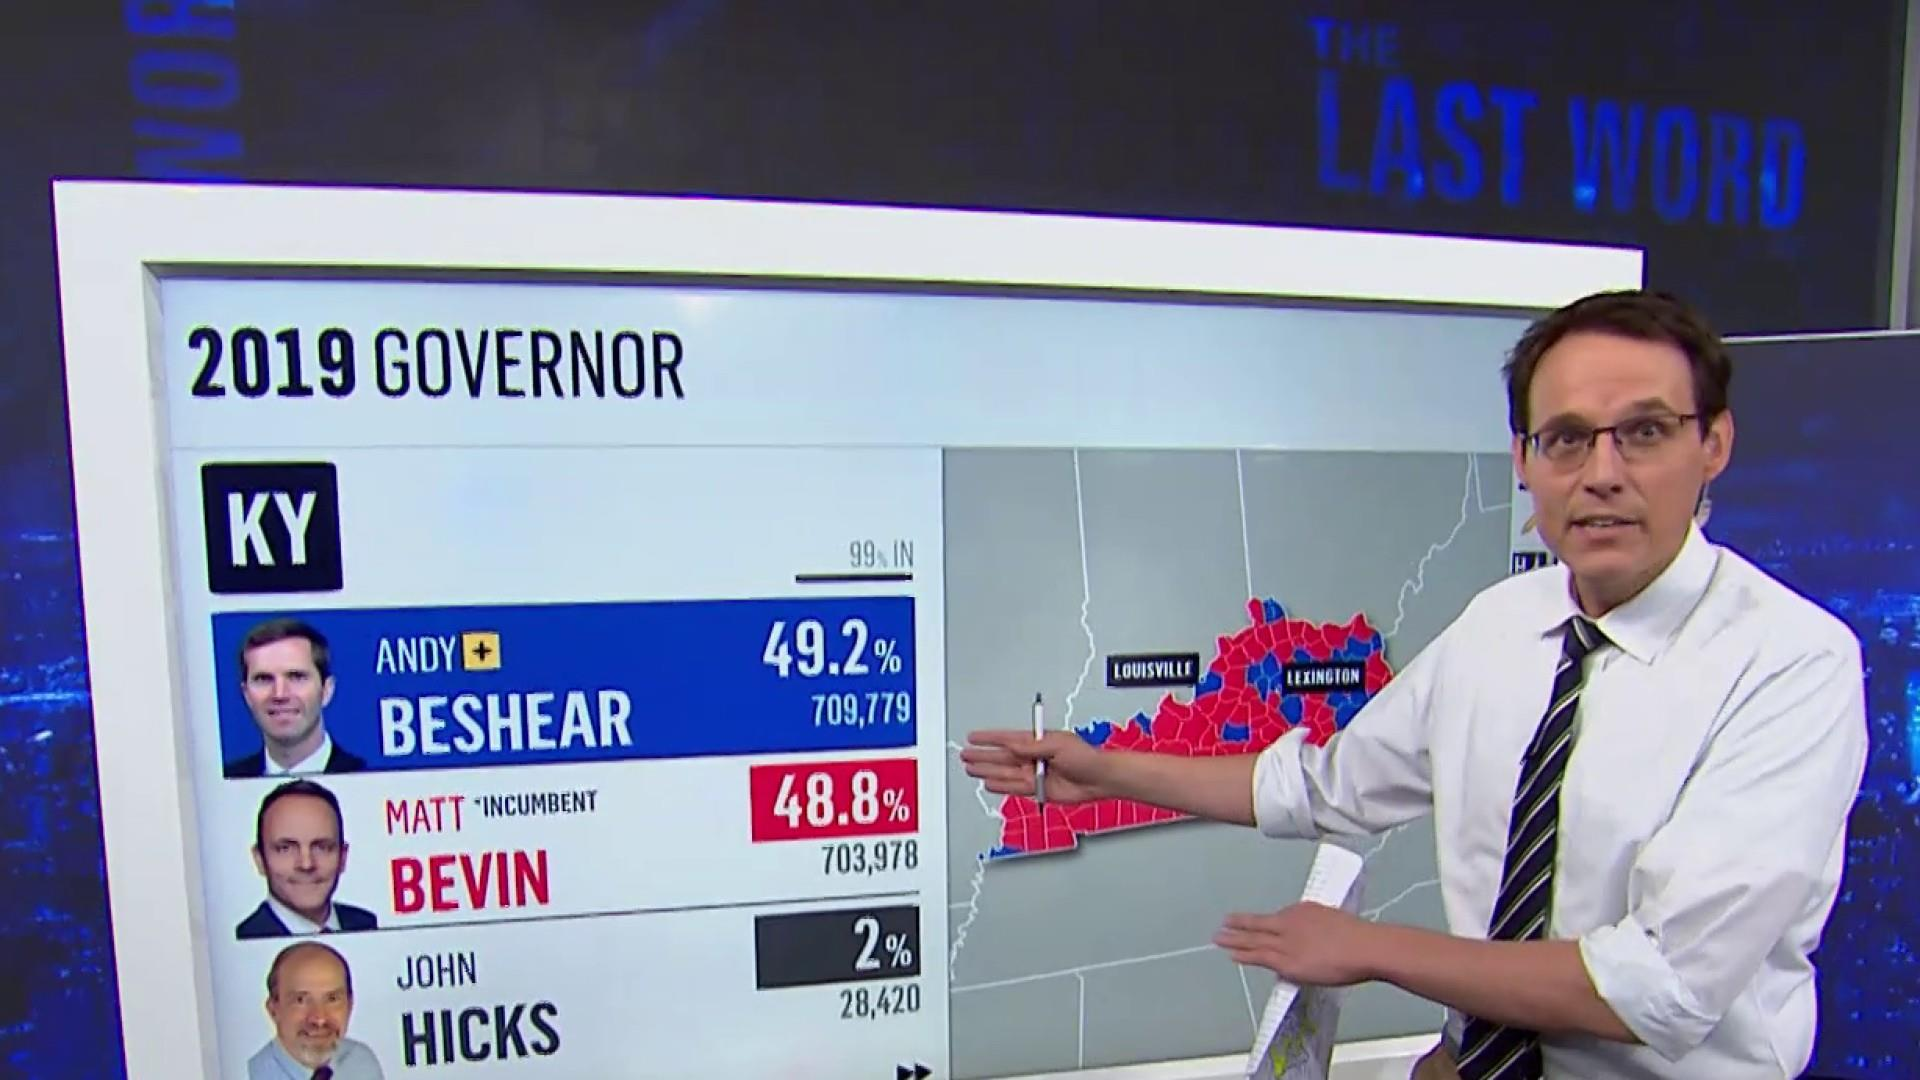 How Dem Beshear beat Bevin (and Trump) in KY